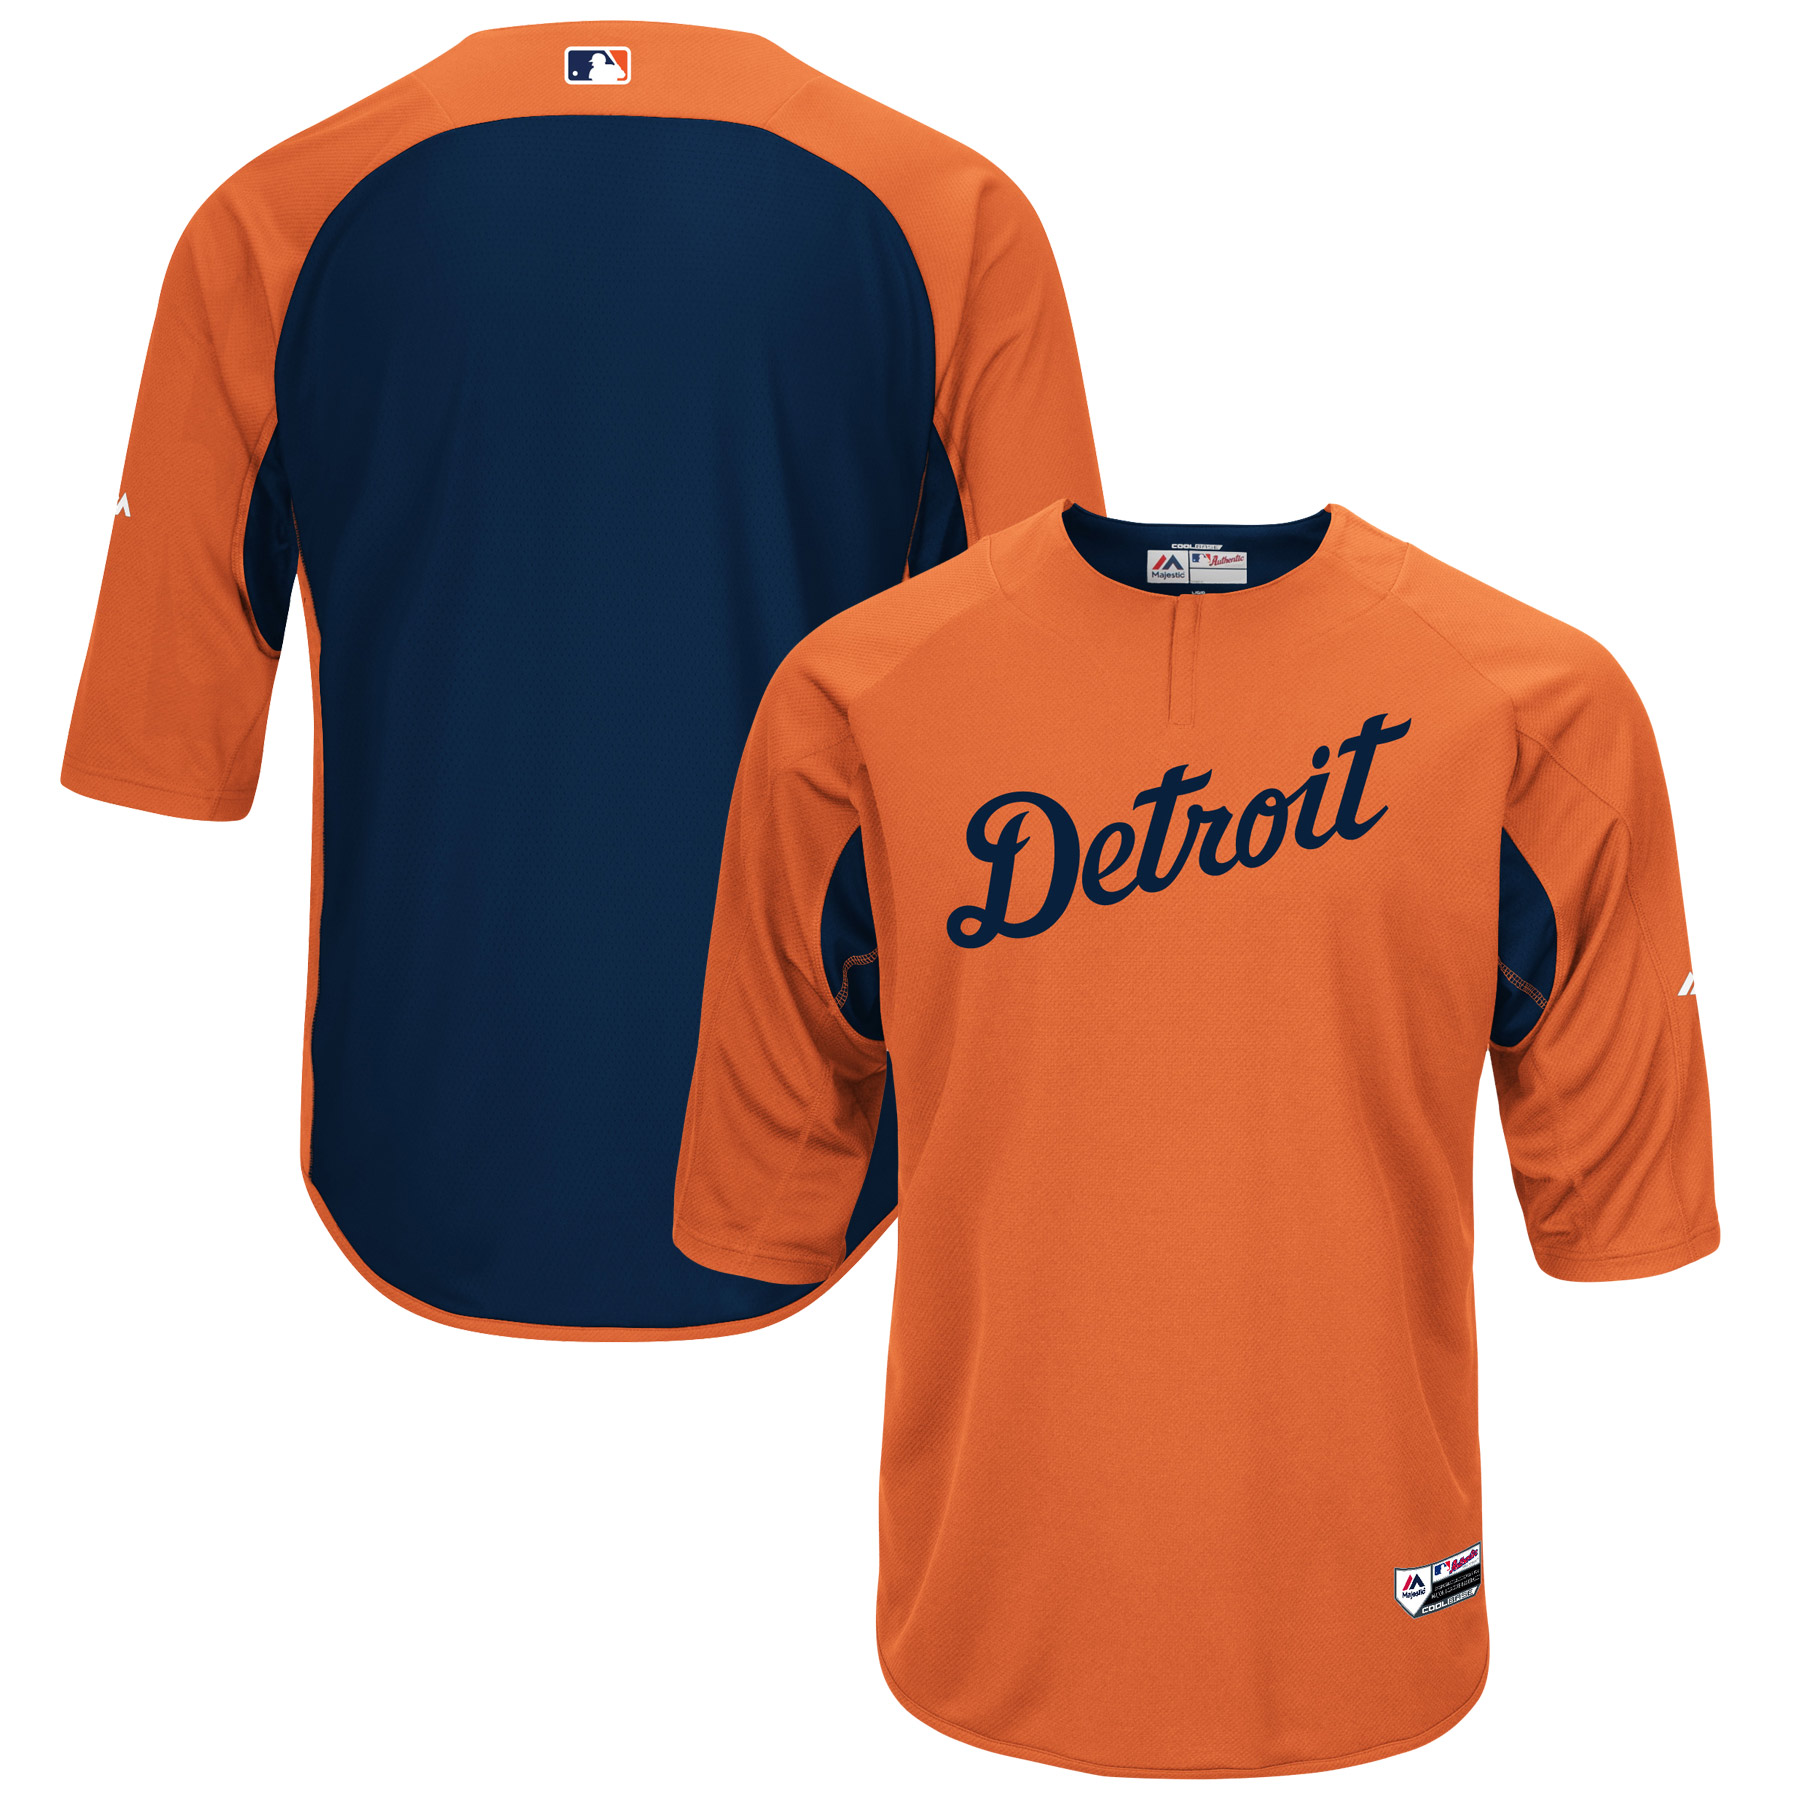 Detroit Tigers Majestic Authentic Collection On-Field 3/4-Sleeve Batting Practice Jersey - Orange/Navy